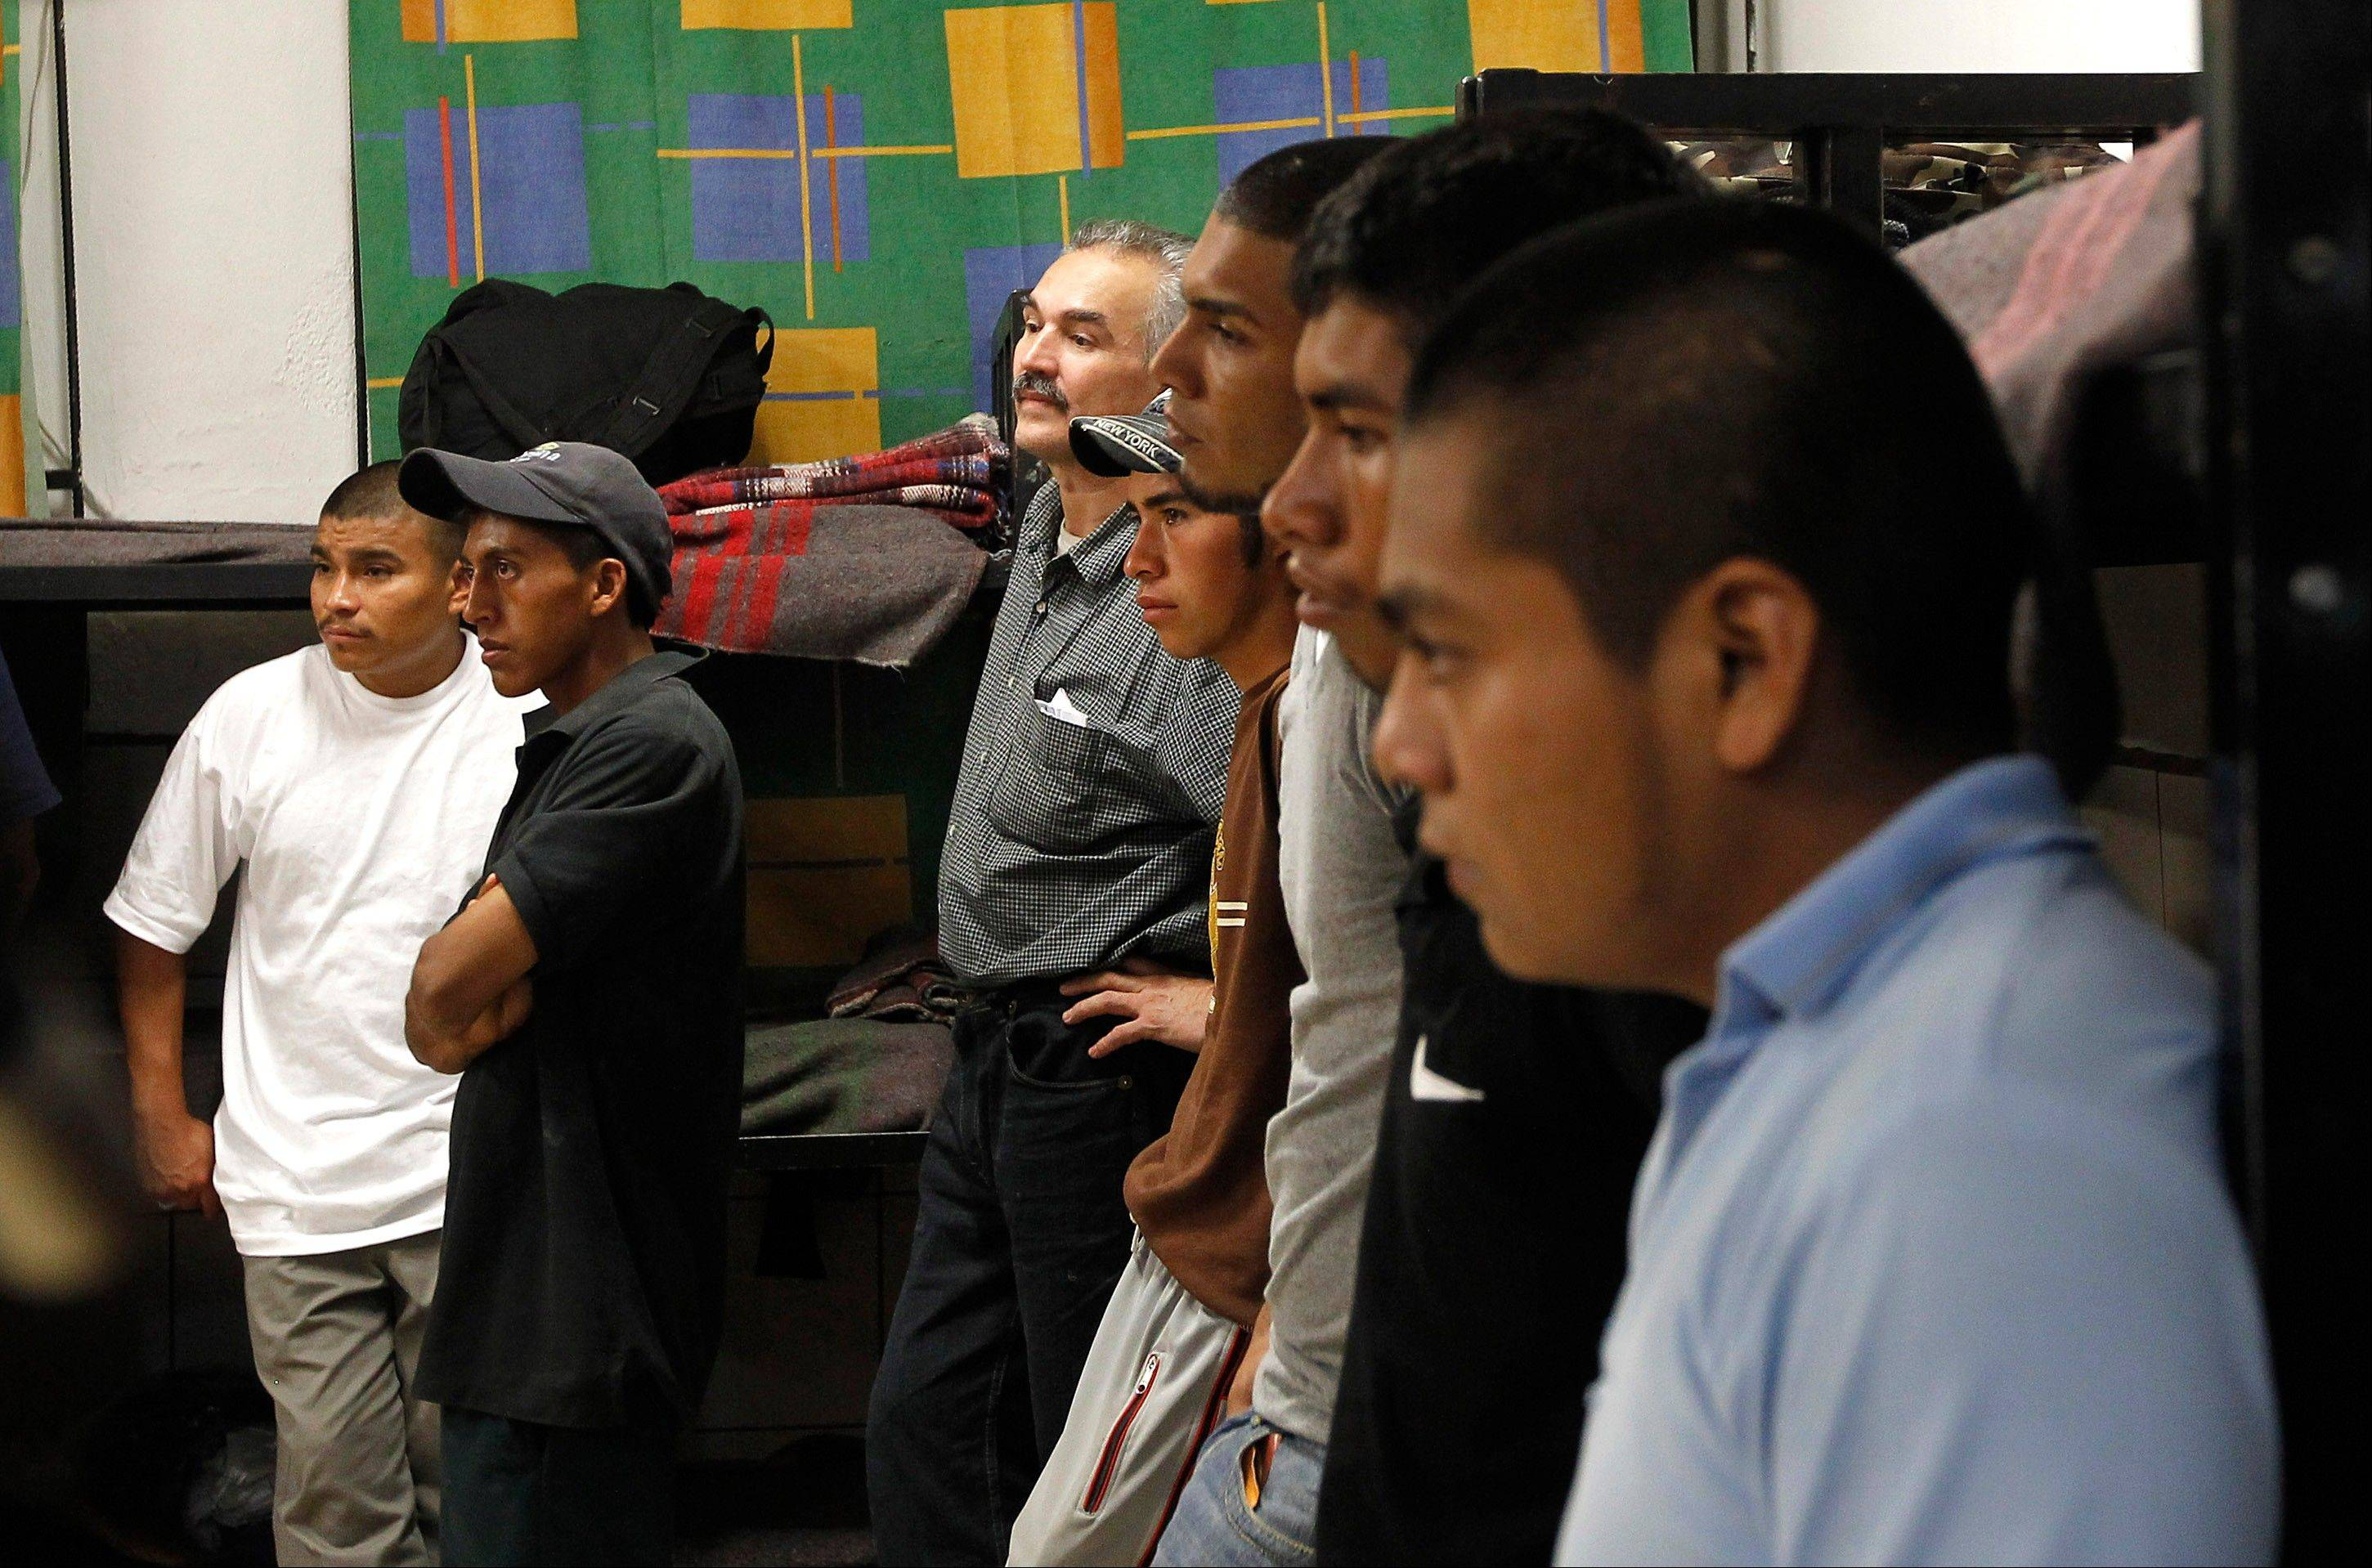 Dozens of immigrants, many of them Mexican citizens, gather in sleeping quarters at a well-known immigrant shelter, as many are making tough decisions on whether to try their luck at trying to make it to the United States, by illegally crossing the border, Thursday, Aug. 9, in Nogales, Mexico. The U.S. government has halted flights home for Mexicans caught entering the country illegally in the deadly summer heat of Arizona's deserts.